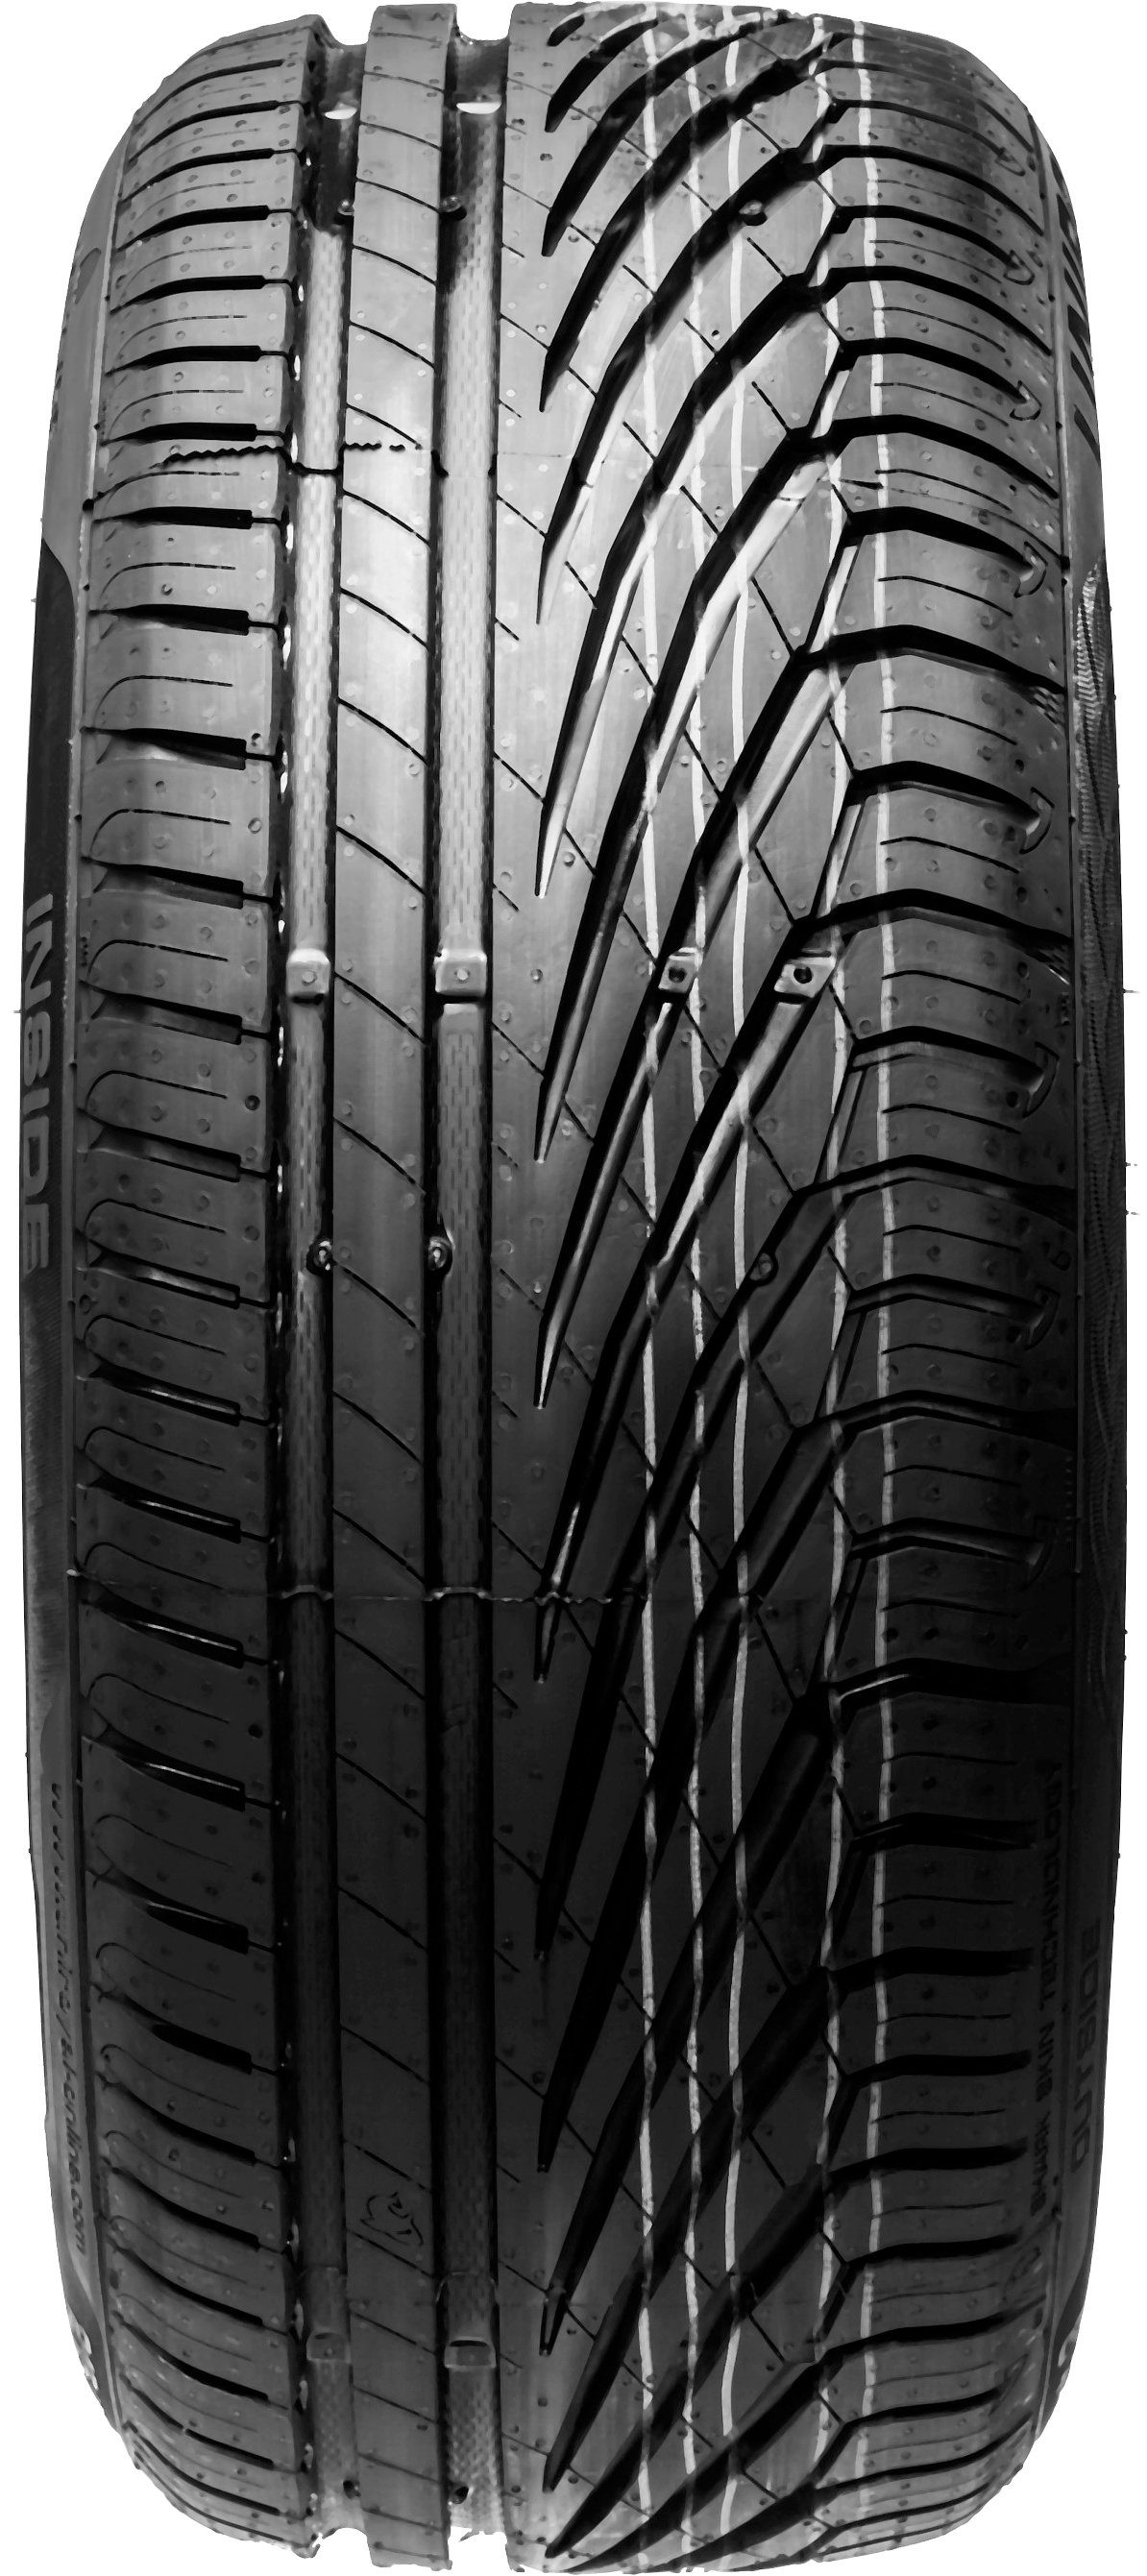 UNIROYAL Sommerreifen »RainSport 3«, 245/45 R17 99Y XL